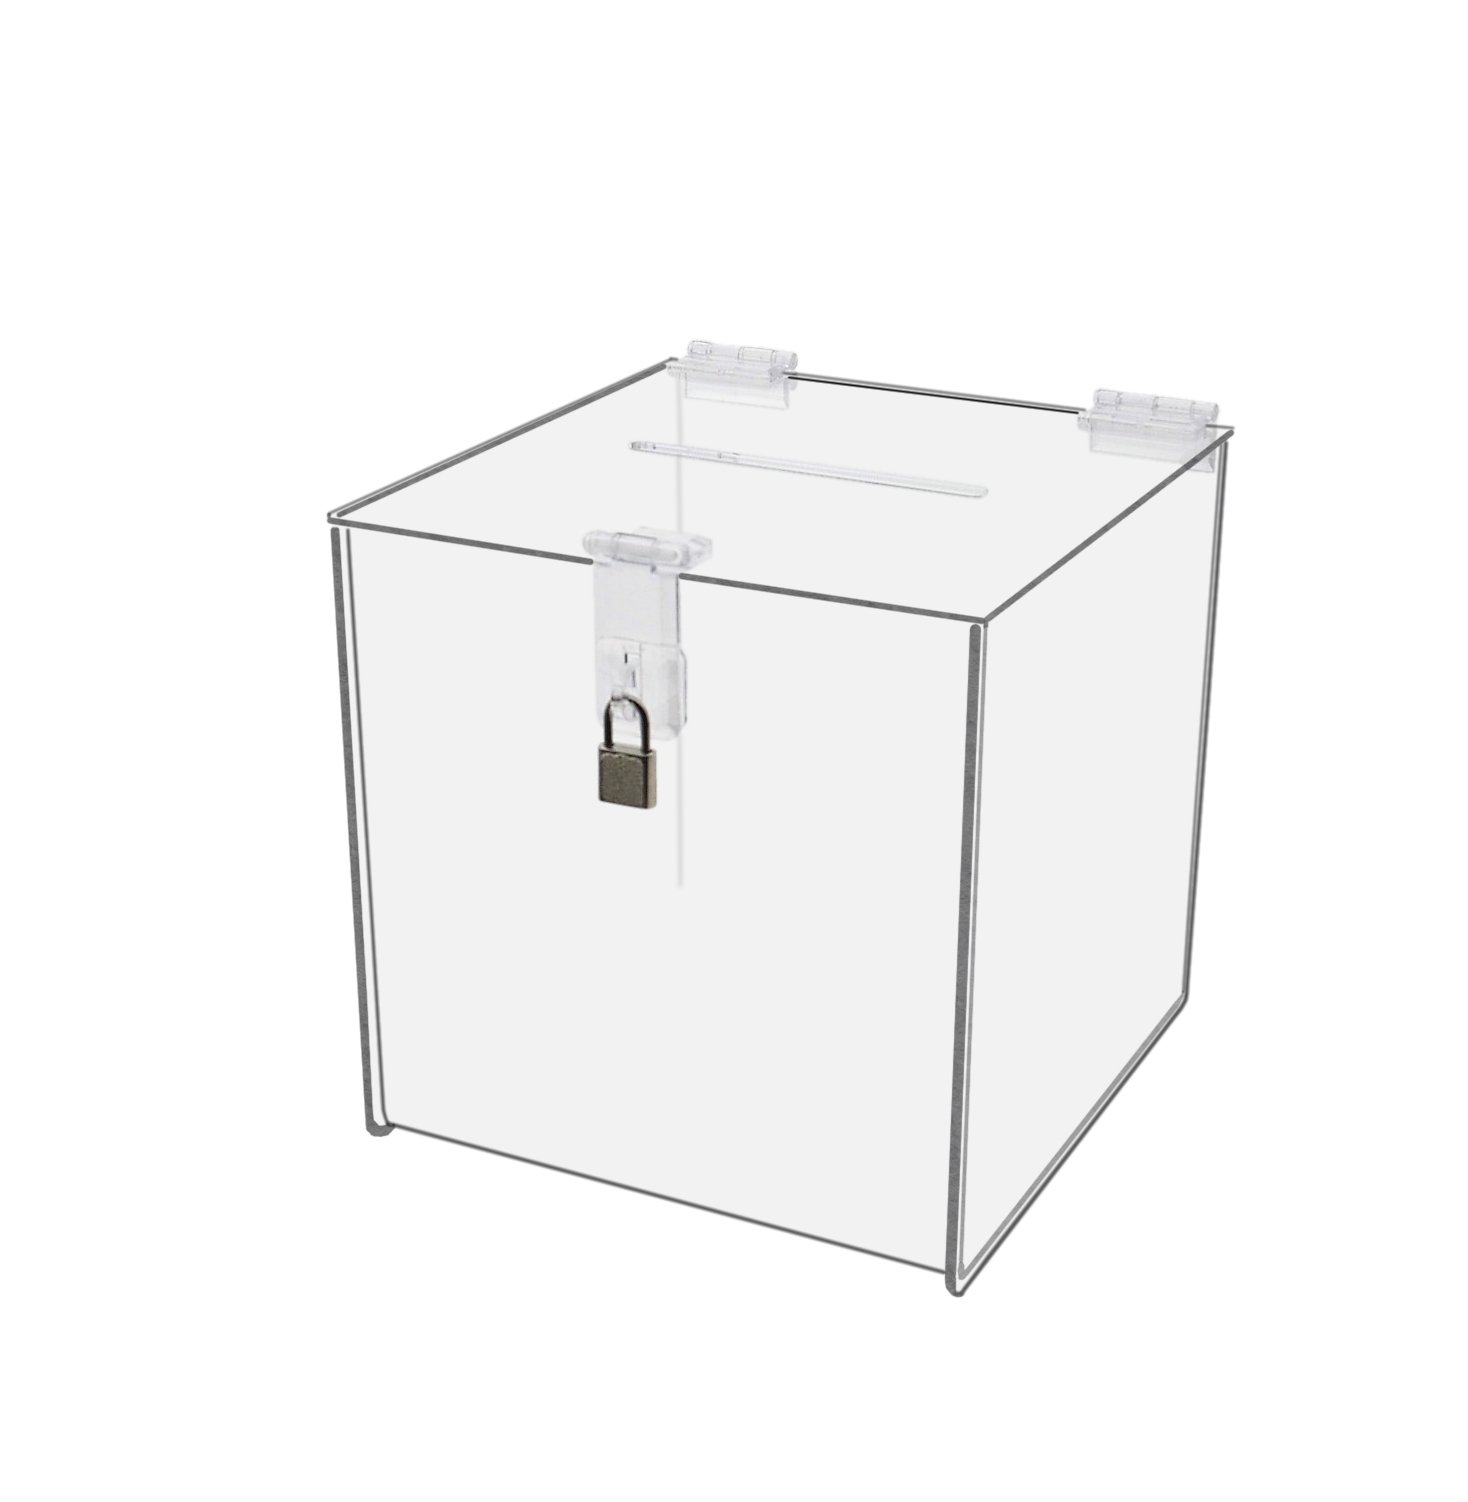 Marketing Holders Clear Locking Ballot Box 8'' x 8'' Suggestion Collection Comment Contest Cube Bundle Value Pack of 6 by Marketing Holders